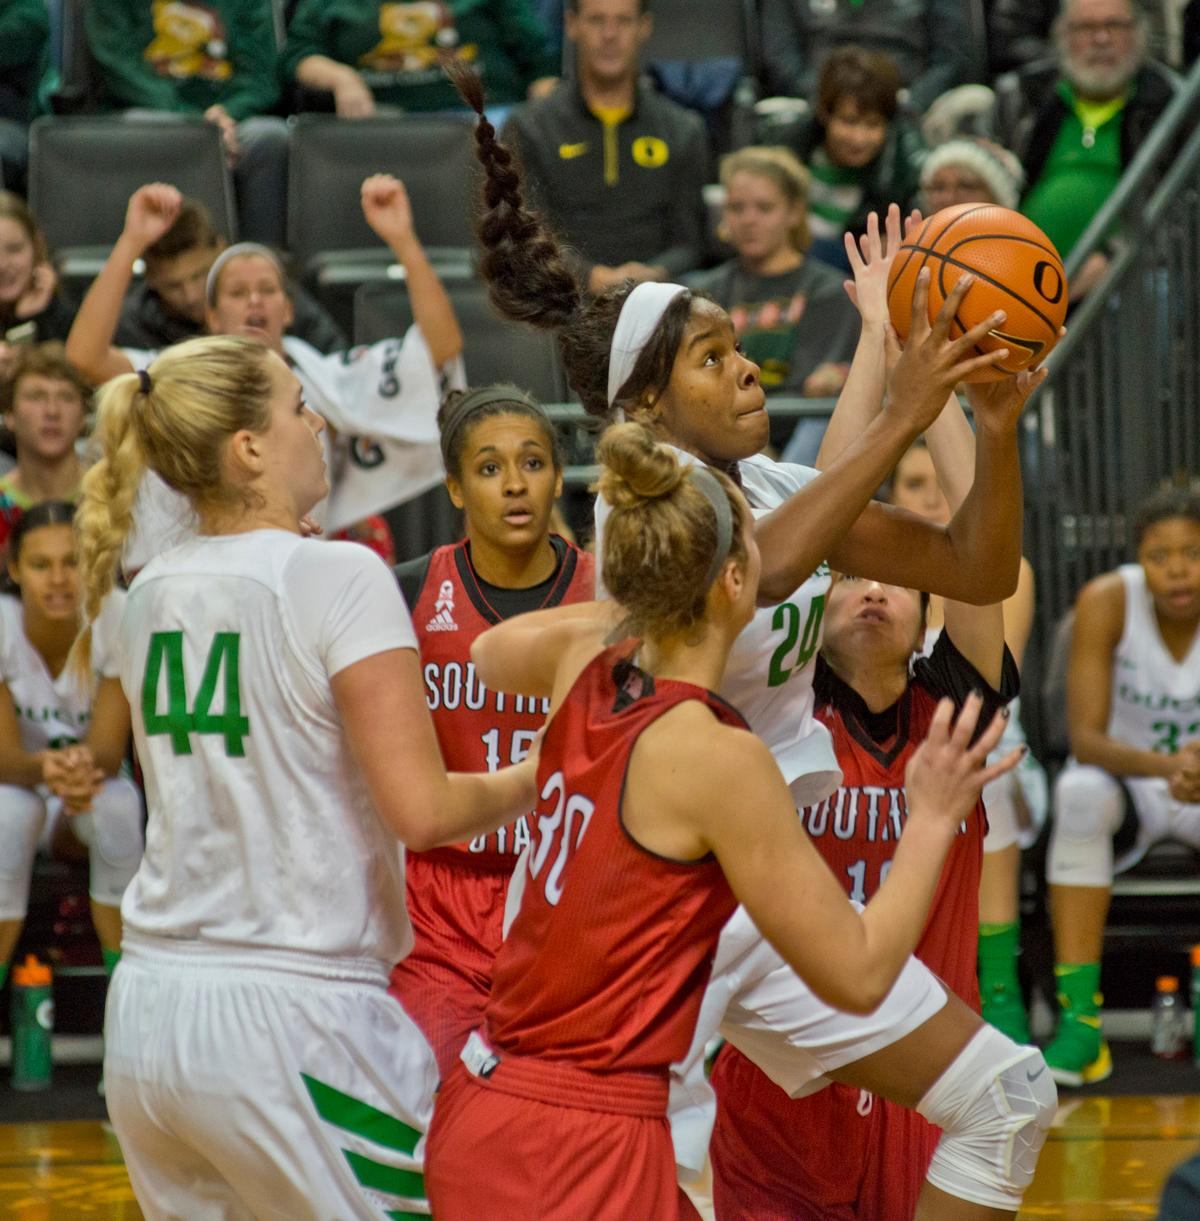 Oregon Ducks Ruthy Bebard (#24) goes up for a shot as the South Utah defense closes in. The University of Oregon Ducks women basketball team defeated the Southern Utah Thunderbirds 98-38 in Matthew Knight Arena Saturday afternoon. The Ducks had four players in double-digits: Ruthy Hebard with 13; Mallory McGwire with 10; Lexi Bando with 17 which included four three-pointers; and Sabrina Ionescu with 16 points. The Ducks overwhelmed the Thunderbirds, shooting 50% in field goals to South Utah's 26.8%, 53.8% in three-pointers to 12.5%, and 85.7% in free throws to 50%. The Ducks, with an overall record of 8-1, and coming into this game ranked 9th, will play their next home game against Ole Miss on December 17. Photo by Dan Morrison, Oregon News Lab